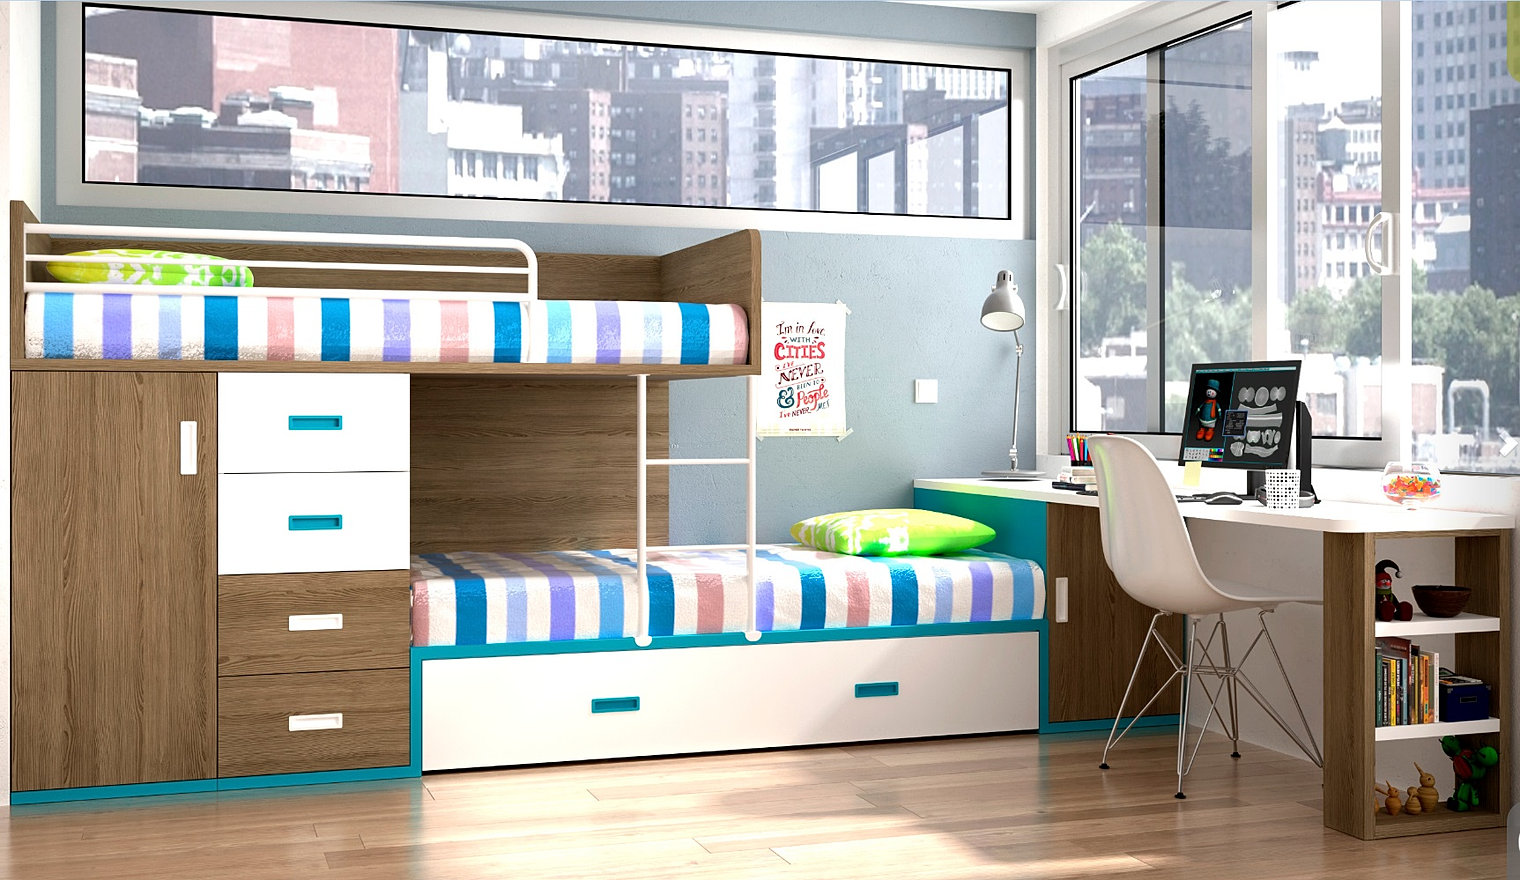 lits superposes en d cal sur mesure. Black Bedroom Furniture Sets. Home Design Ideas